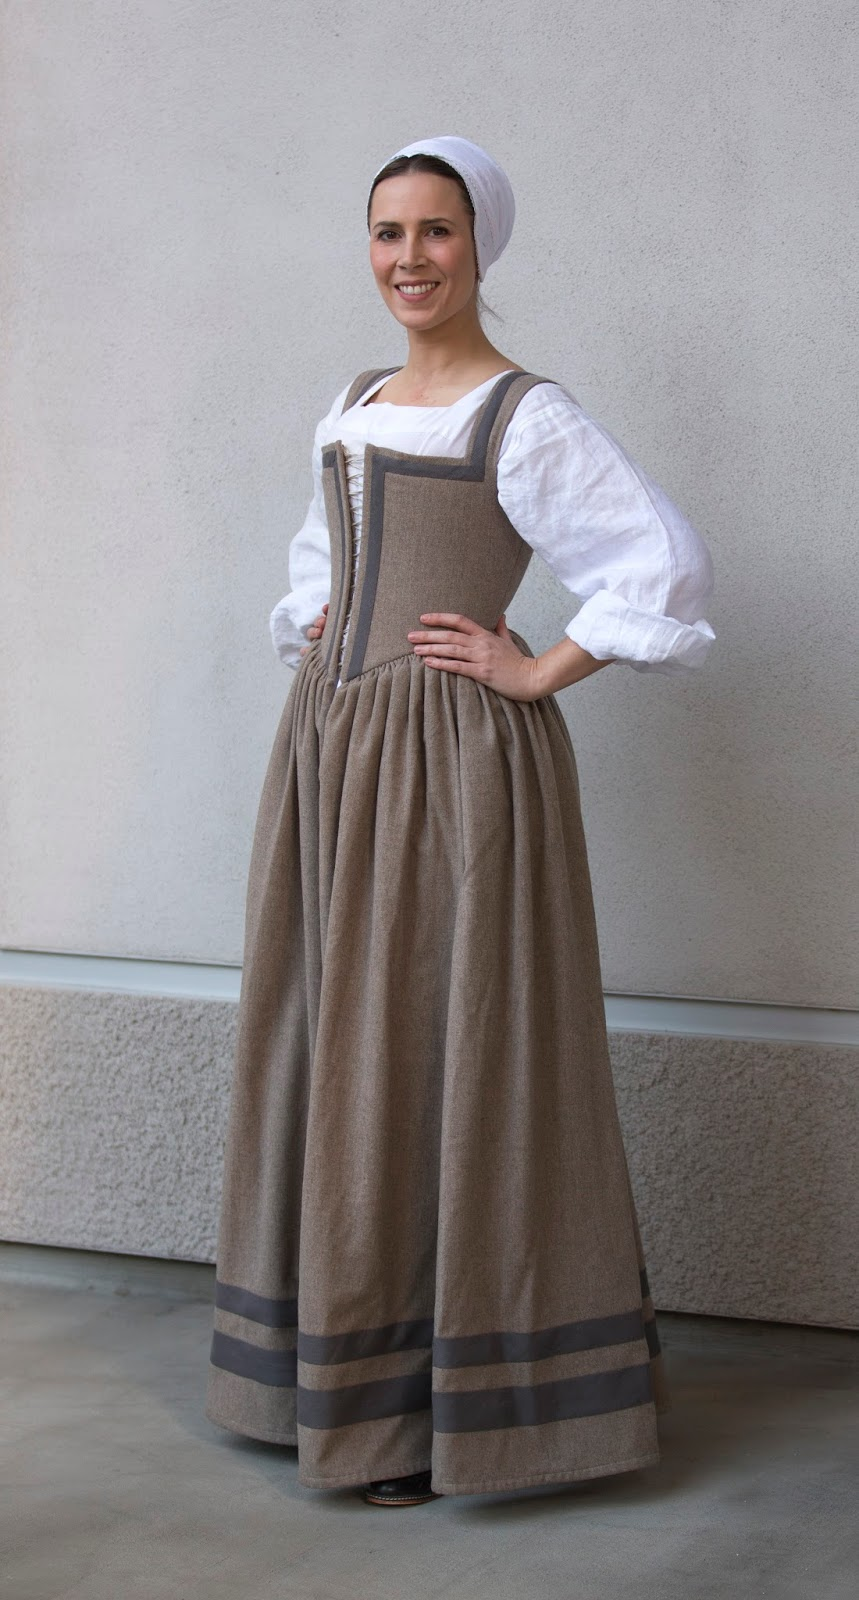 WastedWeeds~: Beige-Brown Kirtle with Grey Guards